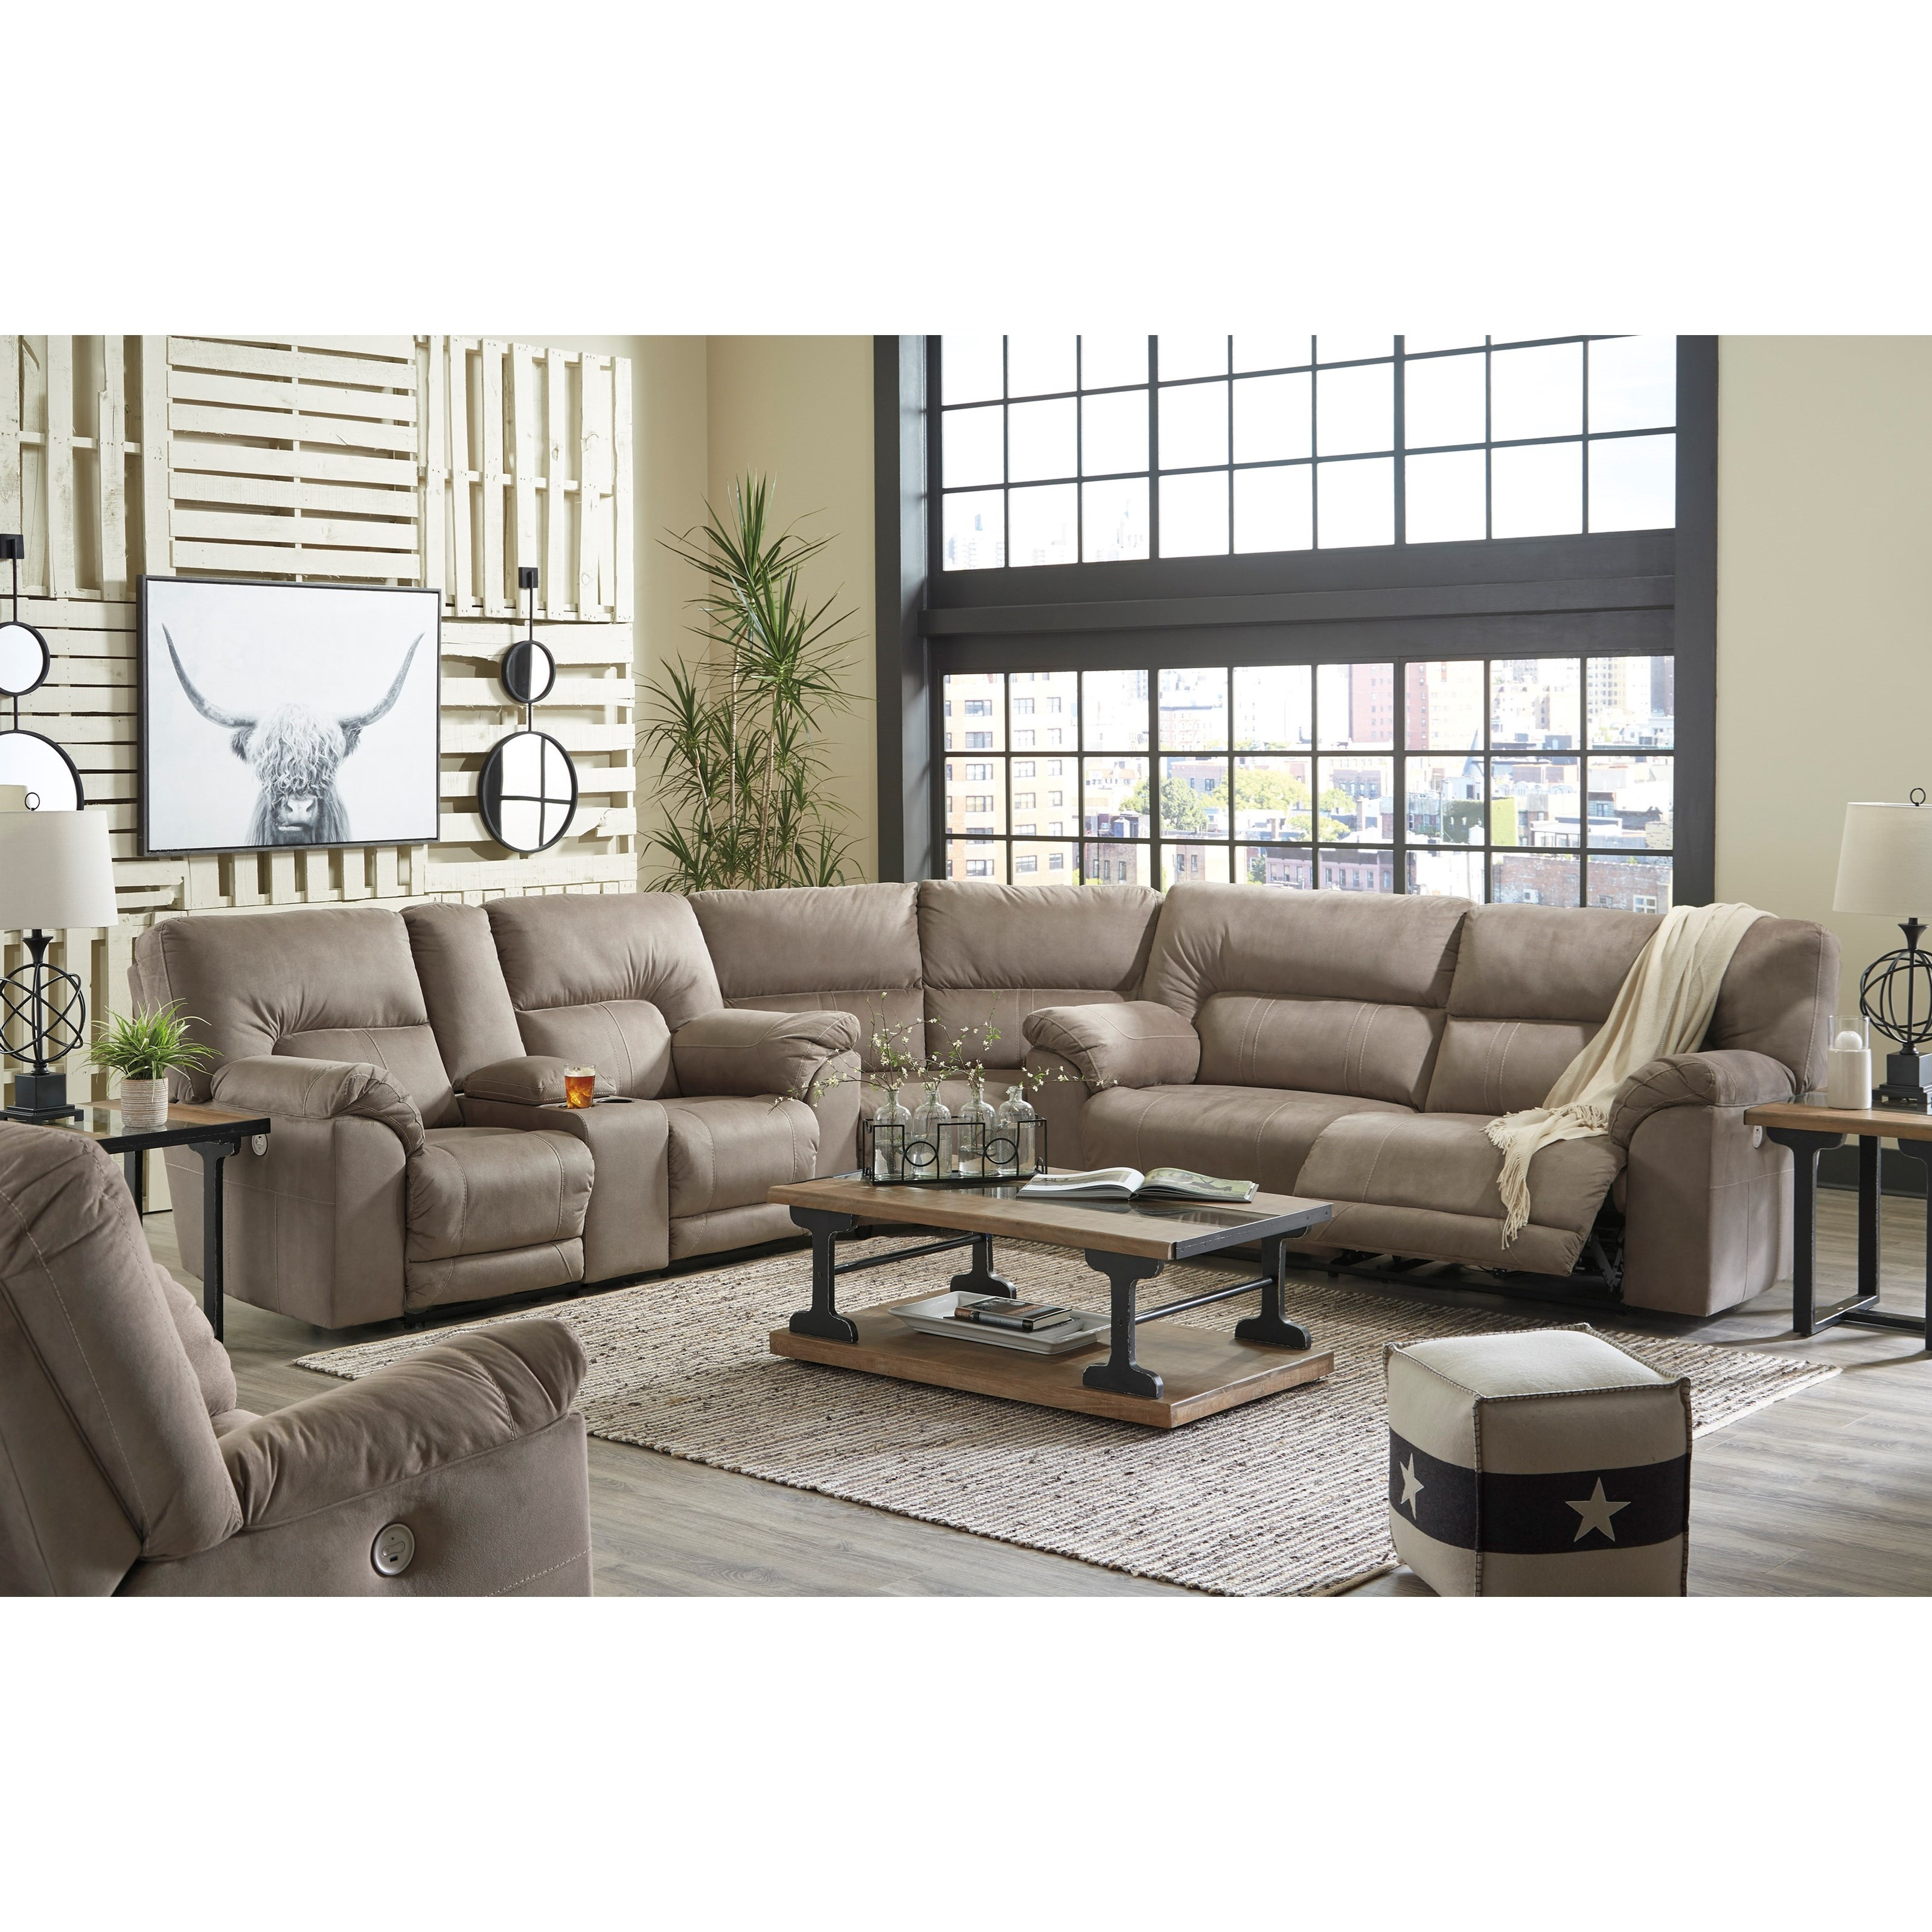 Cavalcade Reclining Living Room Group by Benchcraft at Northeast Factory Direct